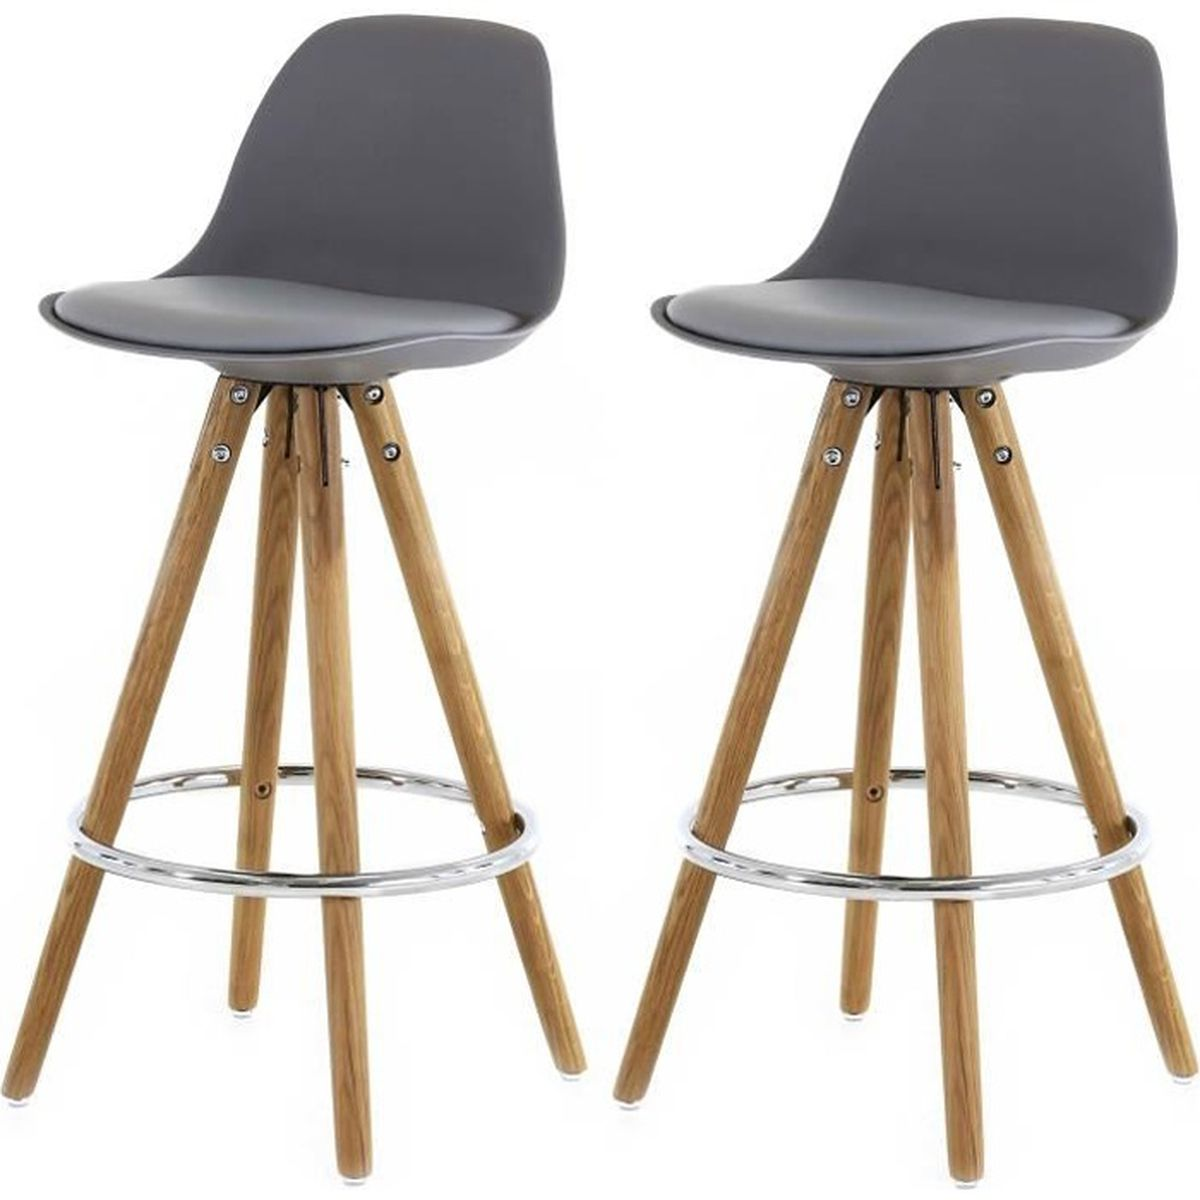 lot de 2 tabourets de bar scandinave gris uma achat vente tabouret de bar soldes d hiver. Black Bedroom Furniture Sets. Home Design Ideas